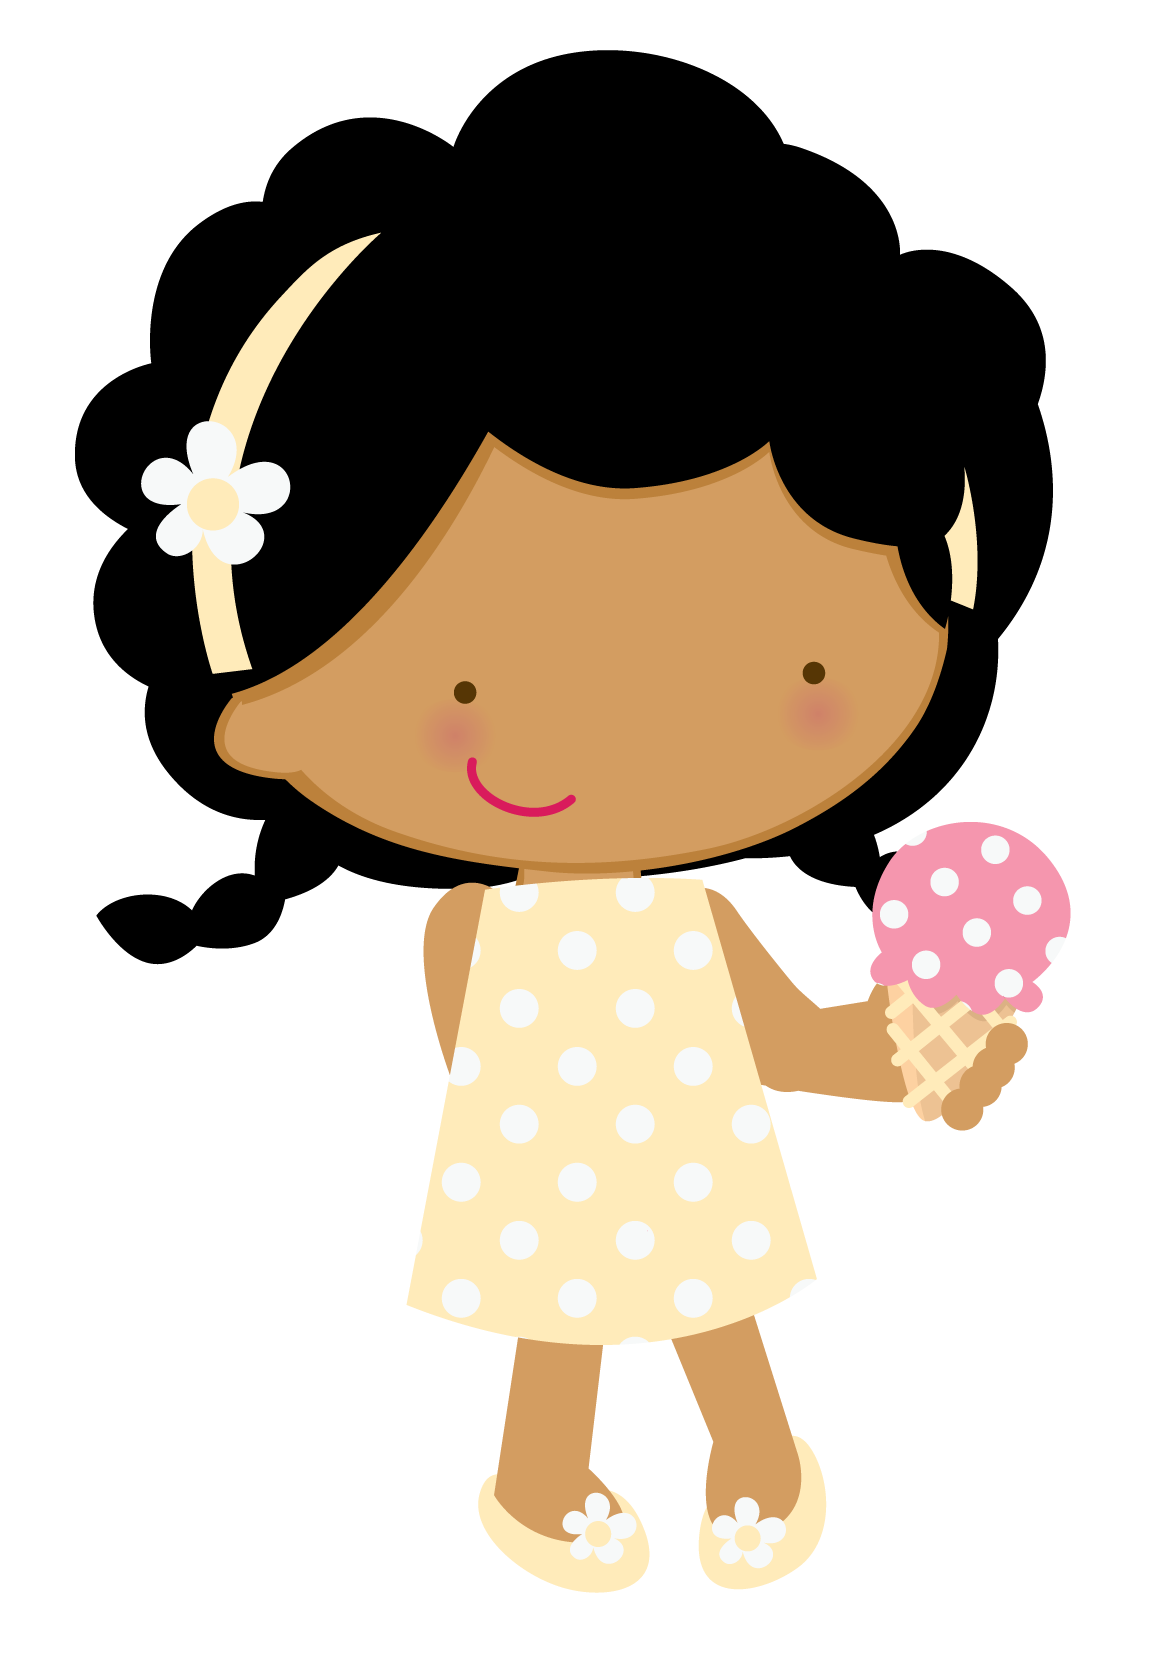 Zwd ice cream png. Lady clipart construction